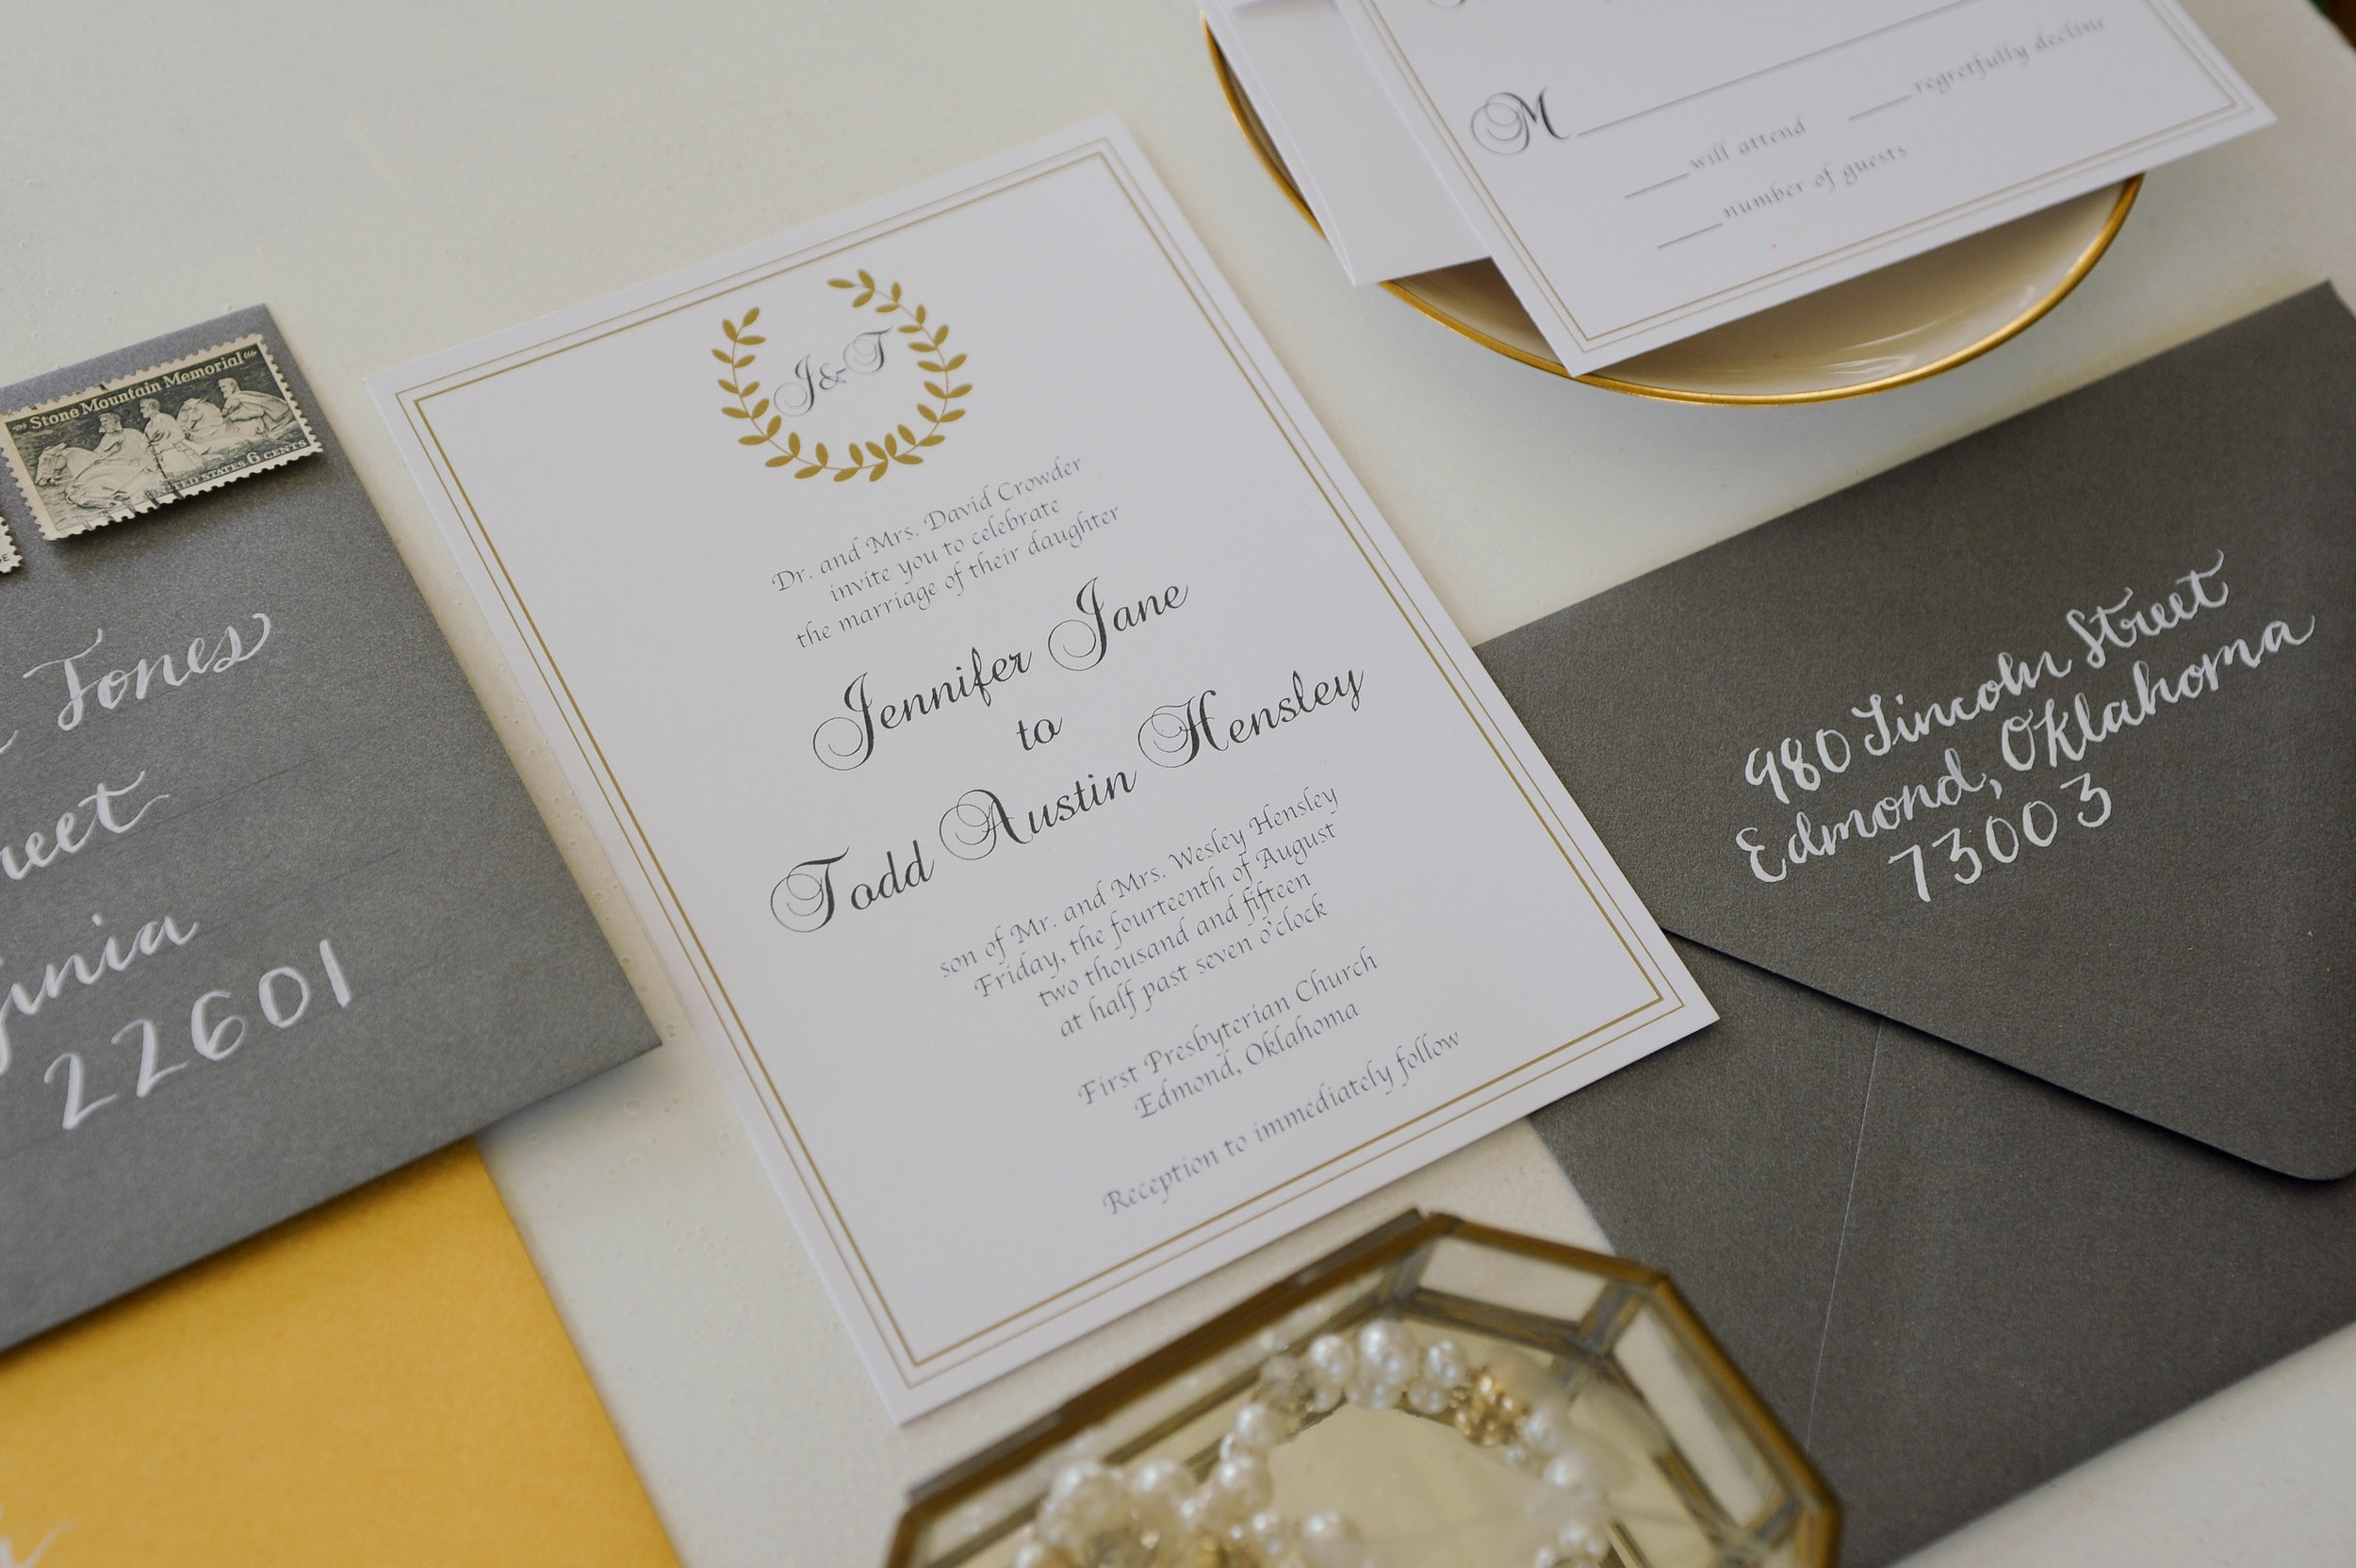 Wedding invitation suite and calligraphy designed by Rachel Kathryn Designs. Photo by Erin Goodrich Photography.